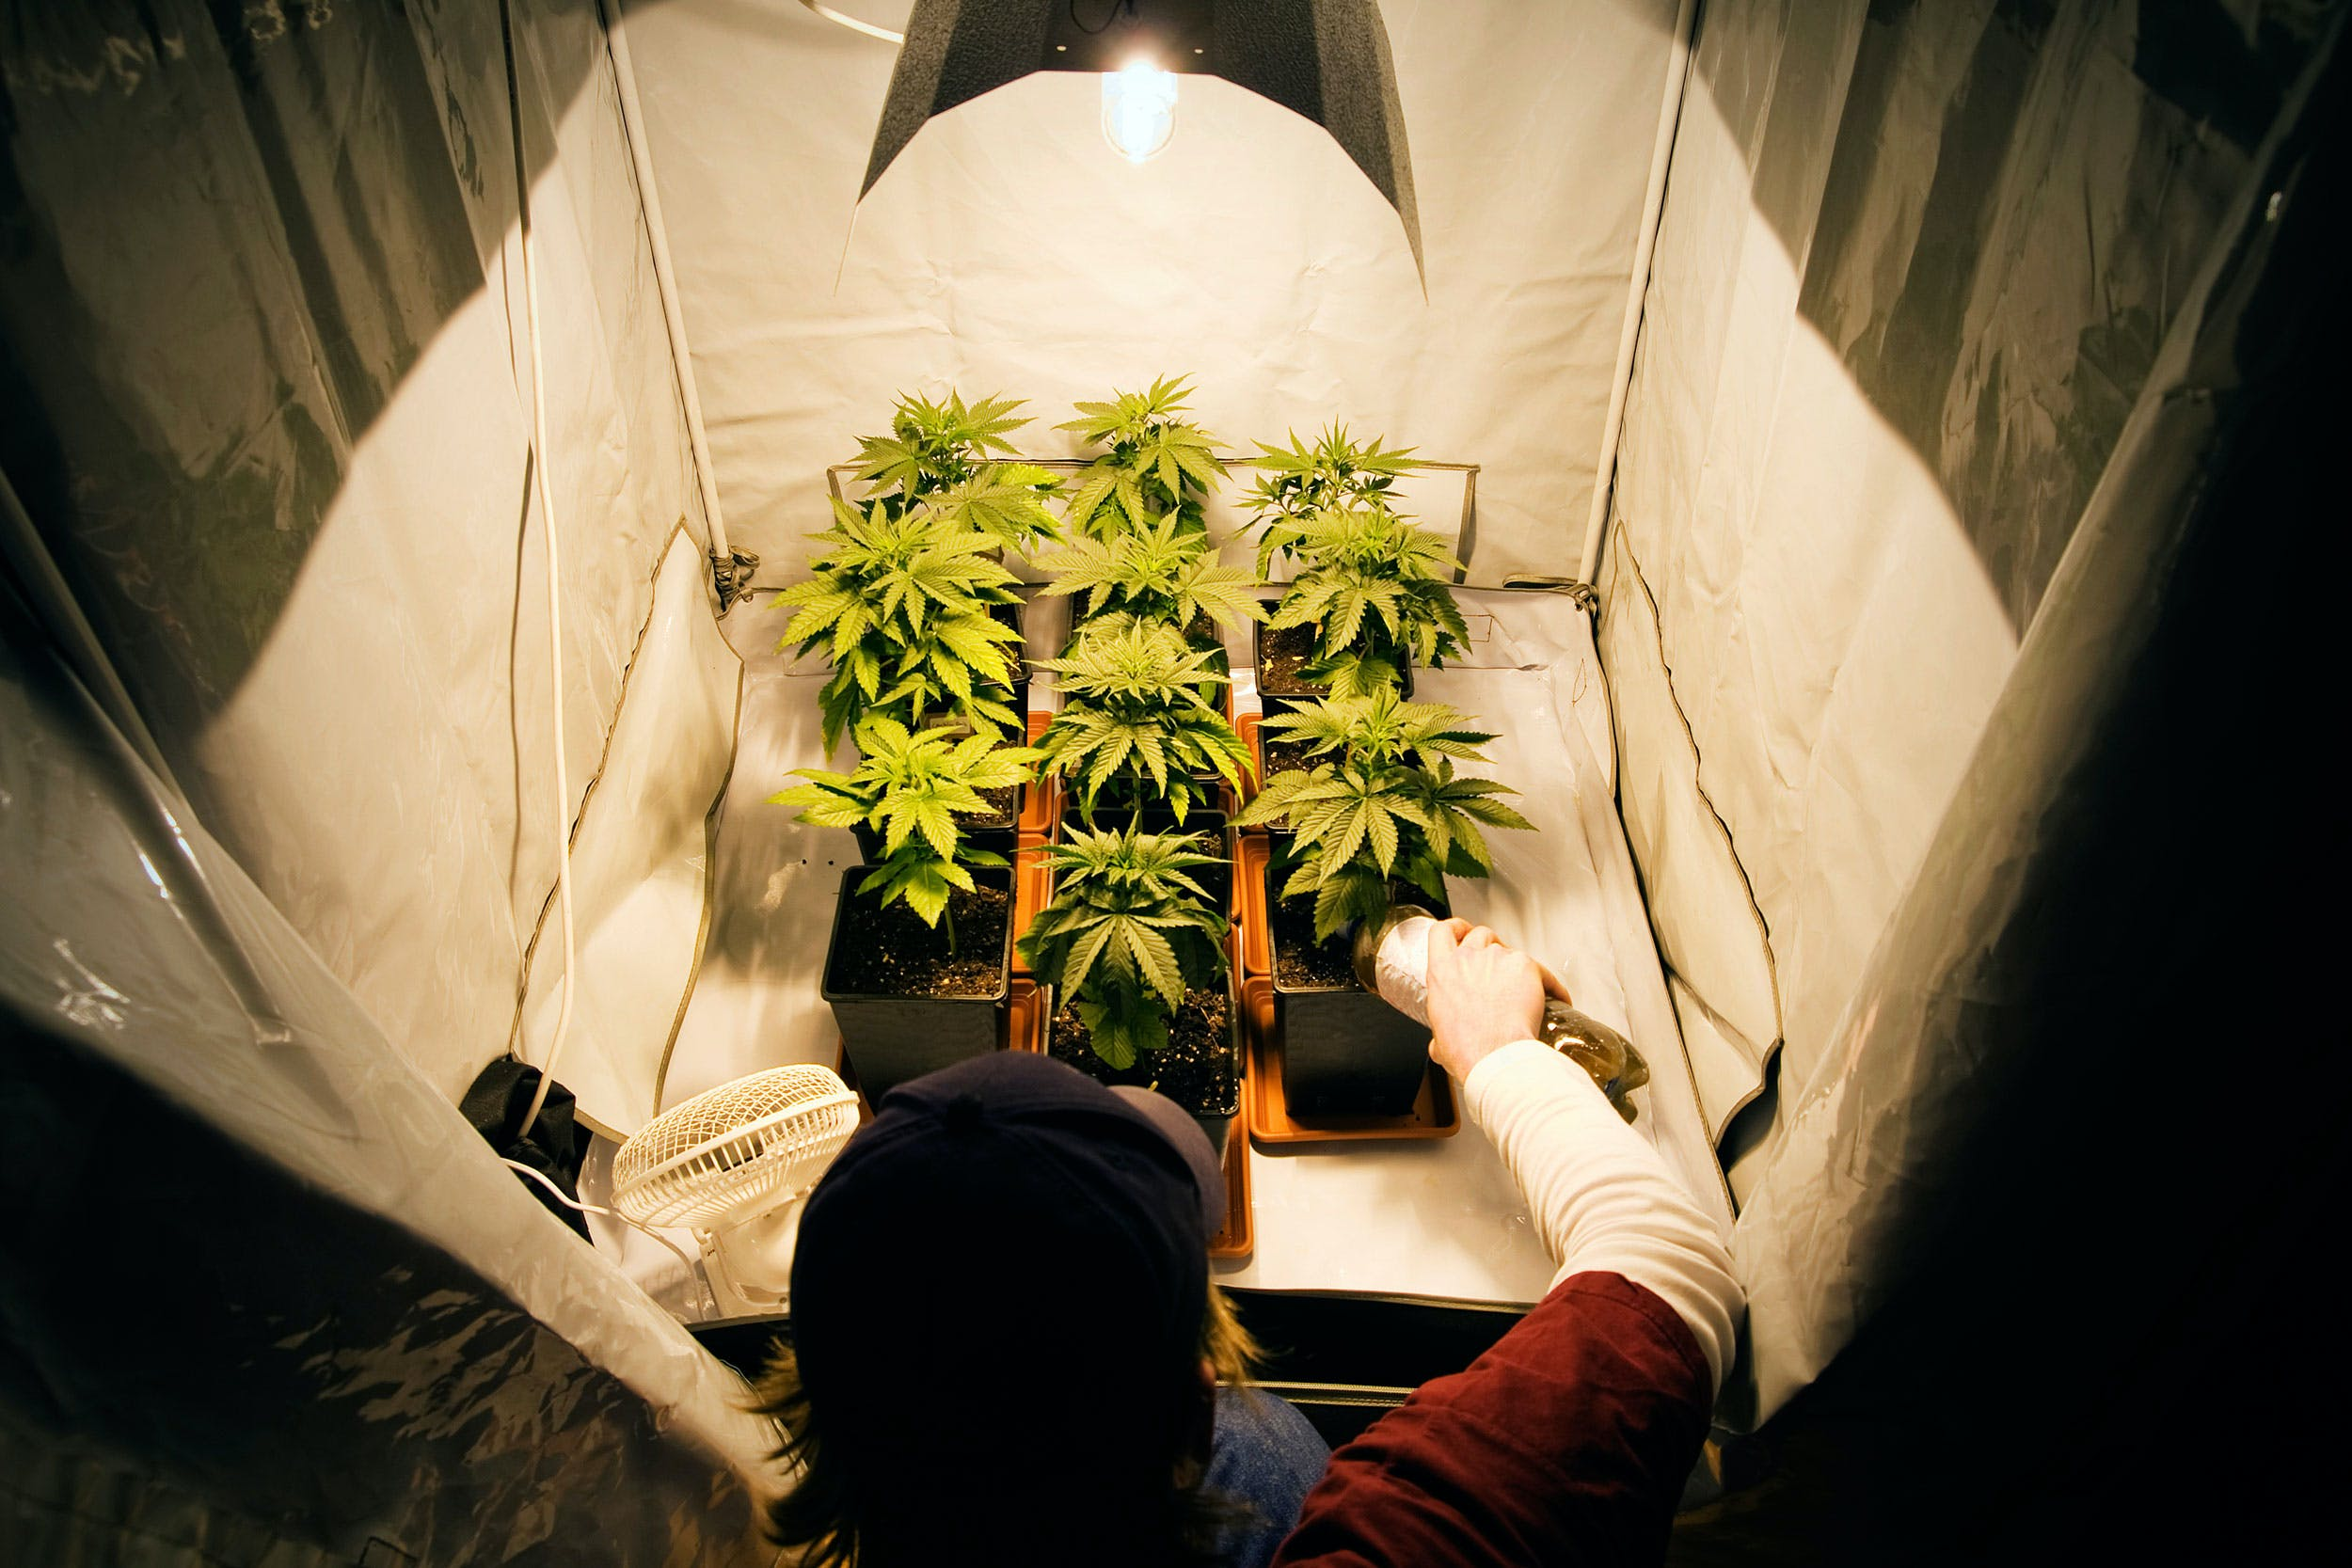 uncropped House rejects 13 amendments including home grow ban California Considers Licensing Its Own Banks For The Cannabis Industry